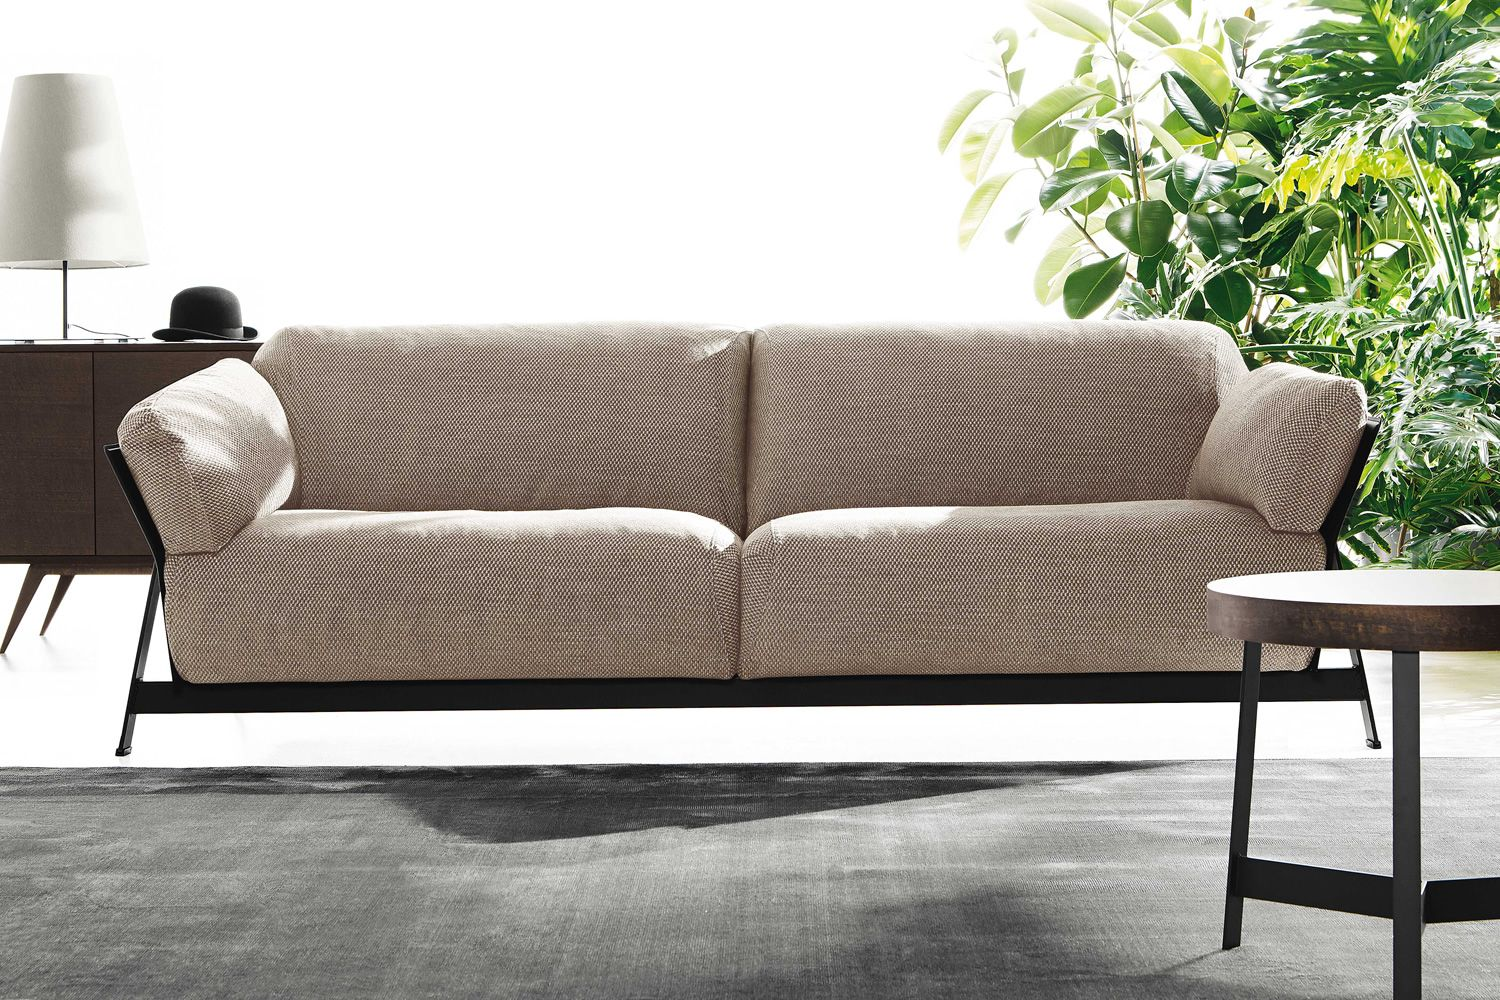 key west modernes sofa mit 2 3 oder 3 xl sitzen in verschiedenen bez ge verf gbar abziehbar. Black Bedroom Furniture Sets. Home Design Ideas